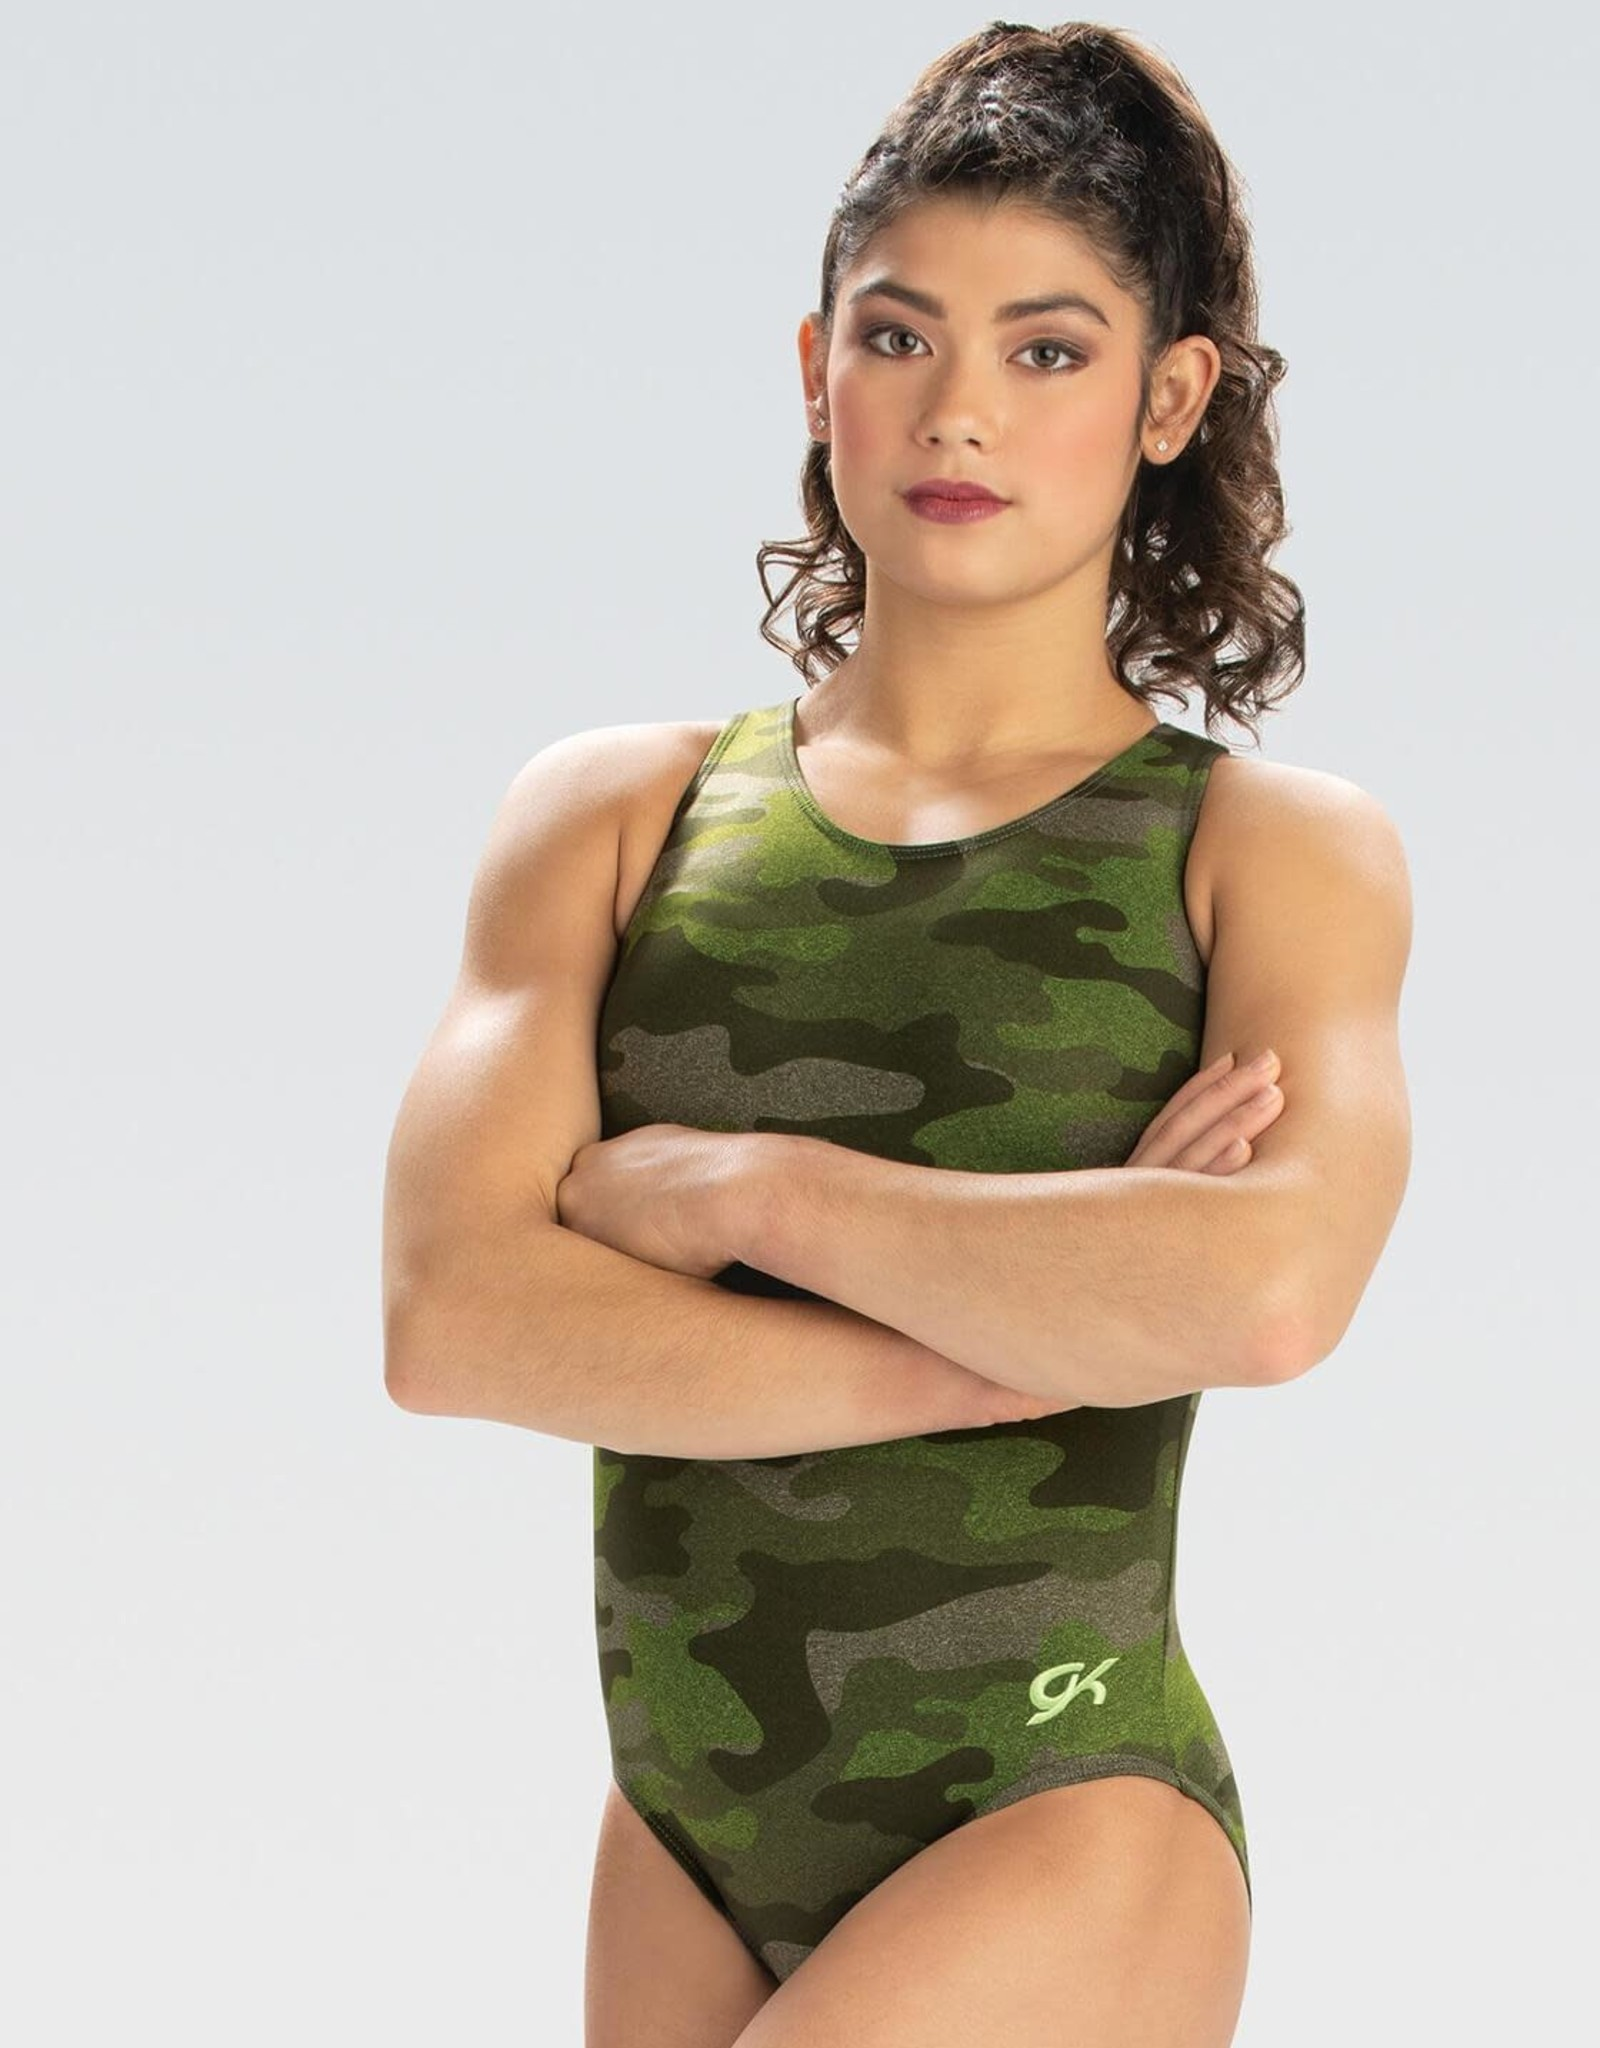 GK Elite E4135- Camo Cutout T-Back Leotard